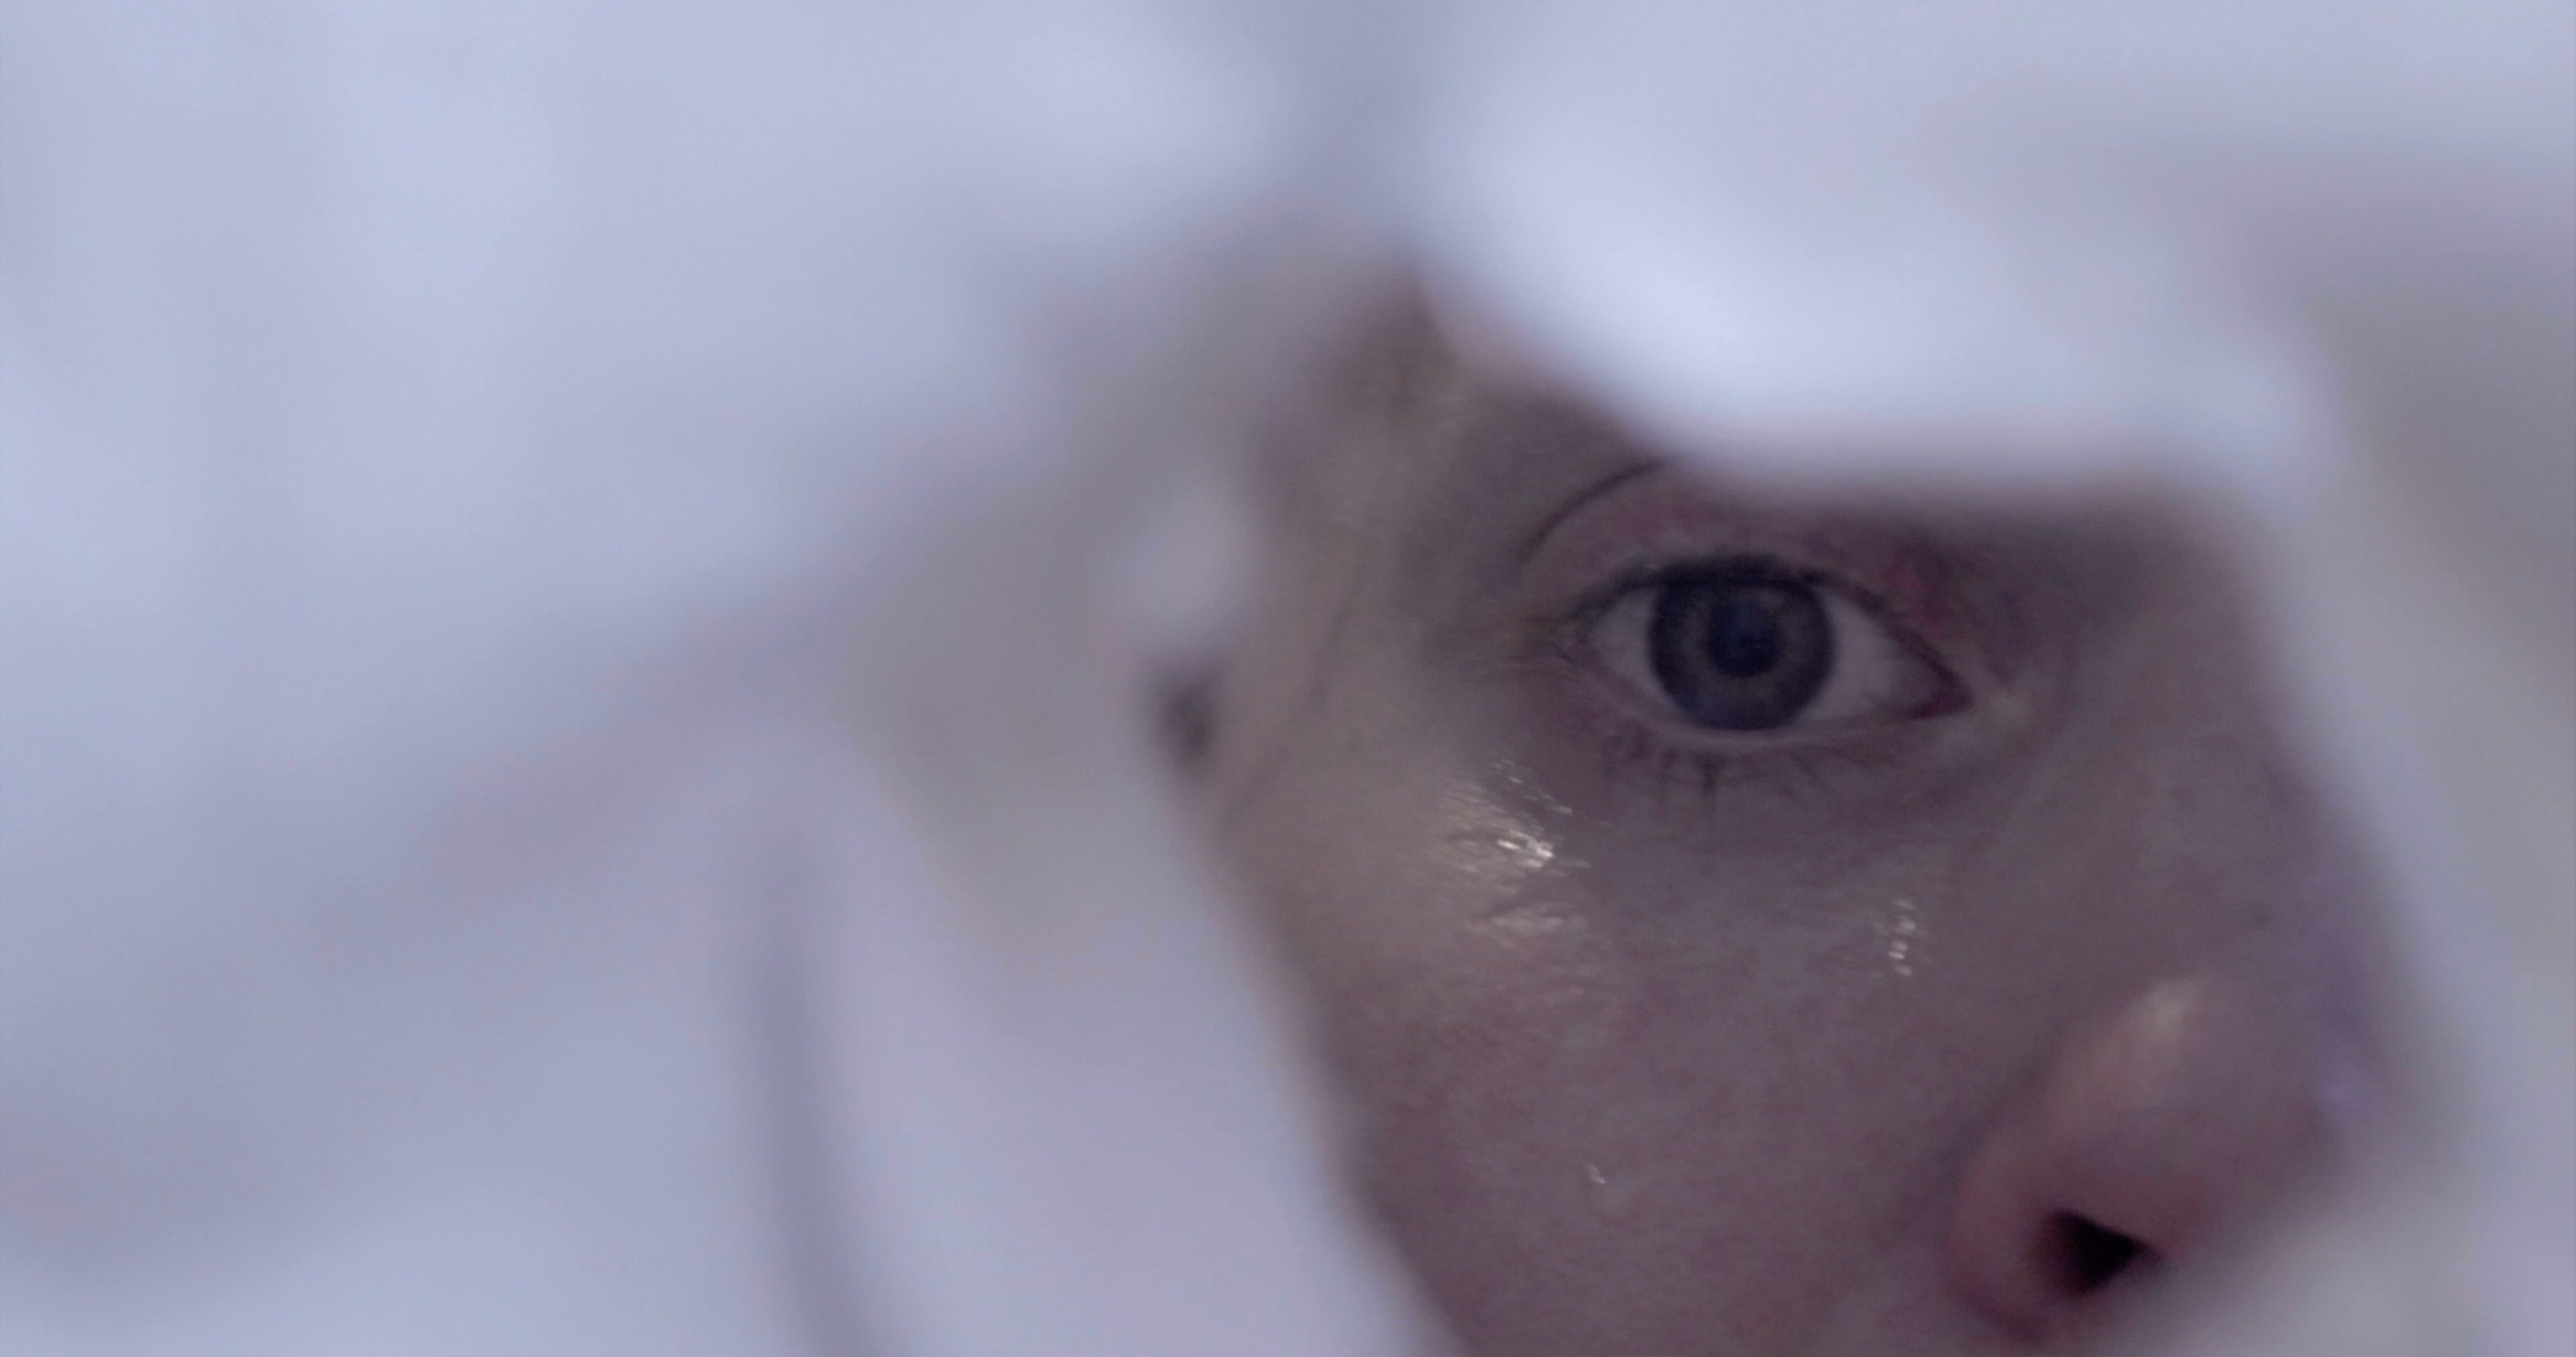 Still from the film A Home Truth showing an eye peeping through a curtain